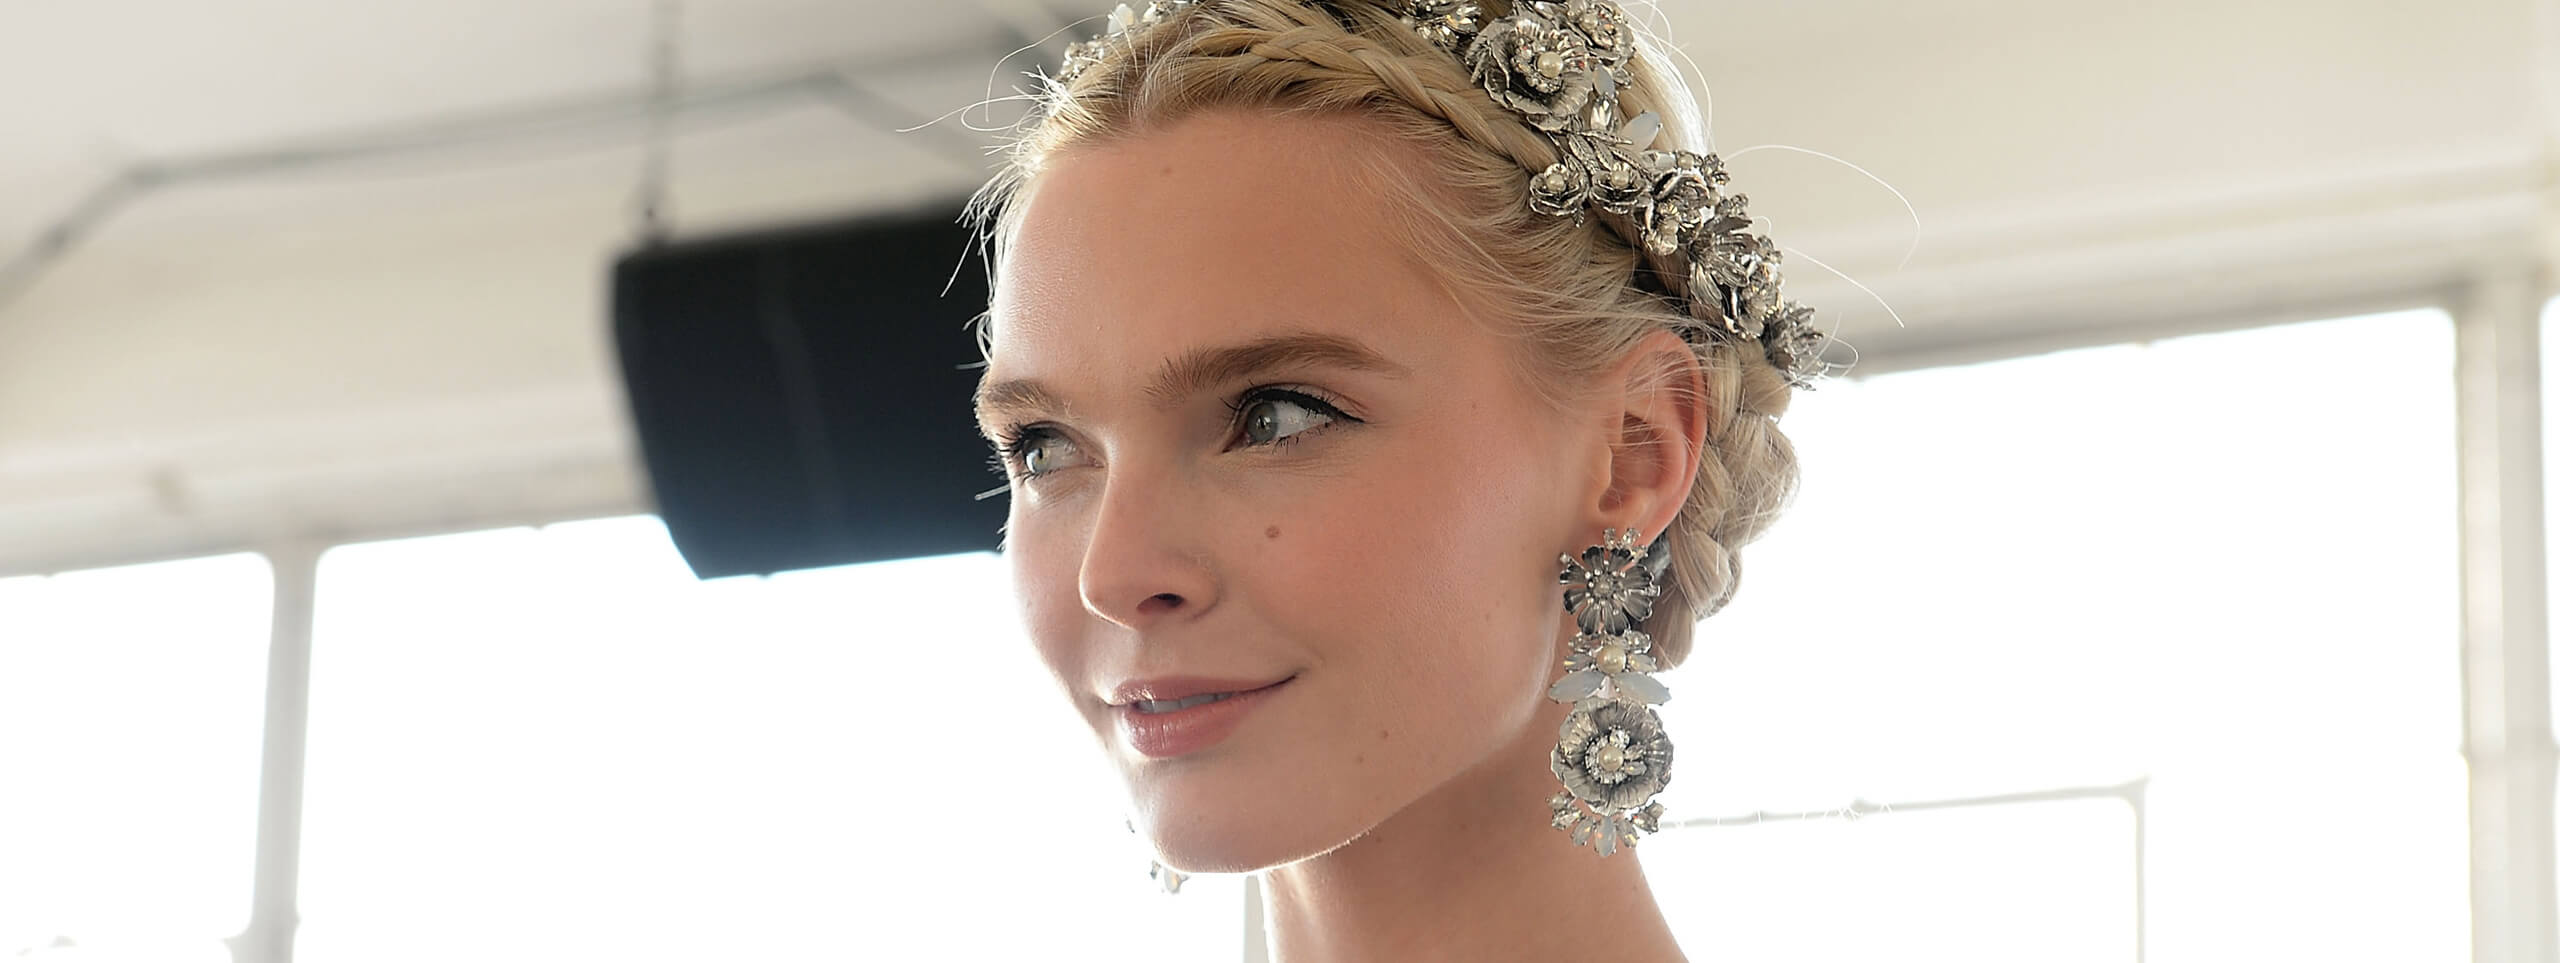 bridal-hairstyles-2016-new-ideas-for-long-hair